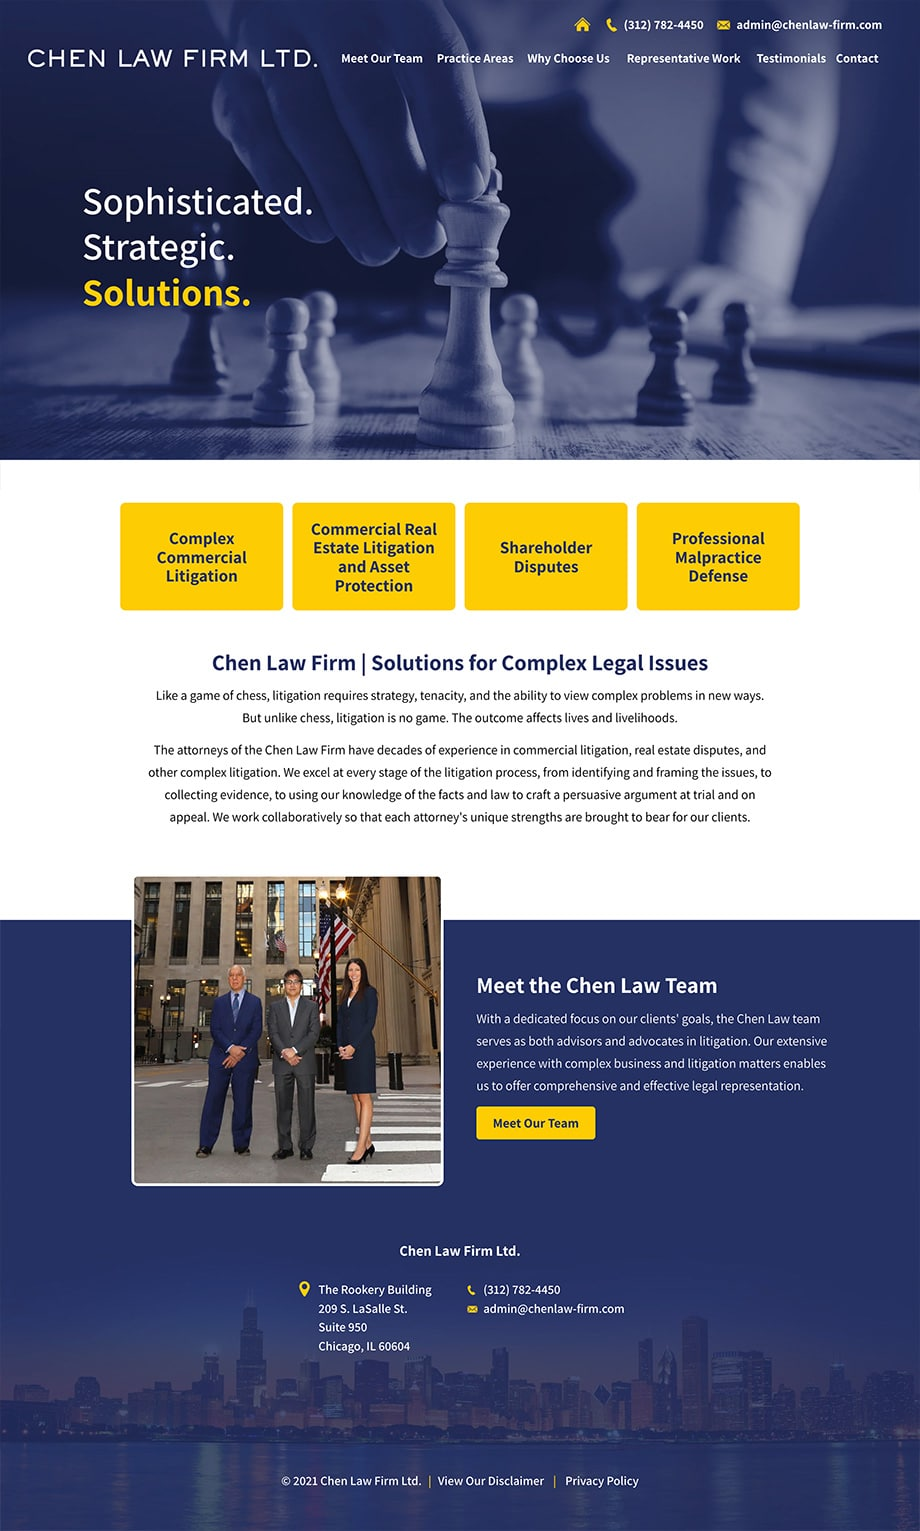 Law Firm Website Design for Chen Law Firm Ltd.